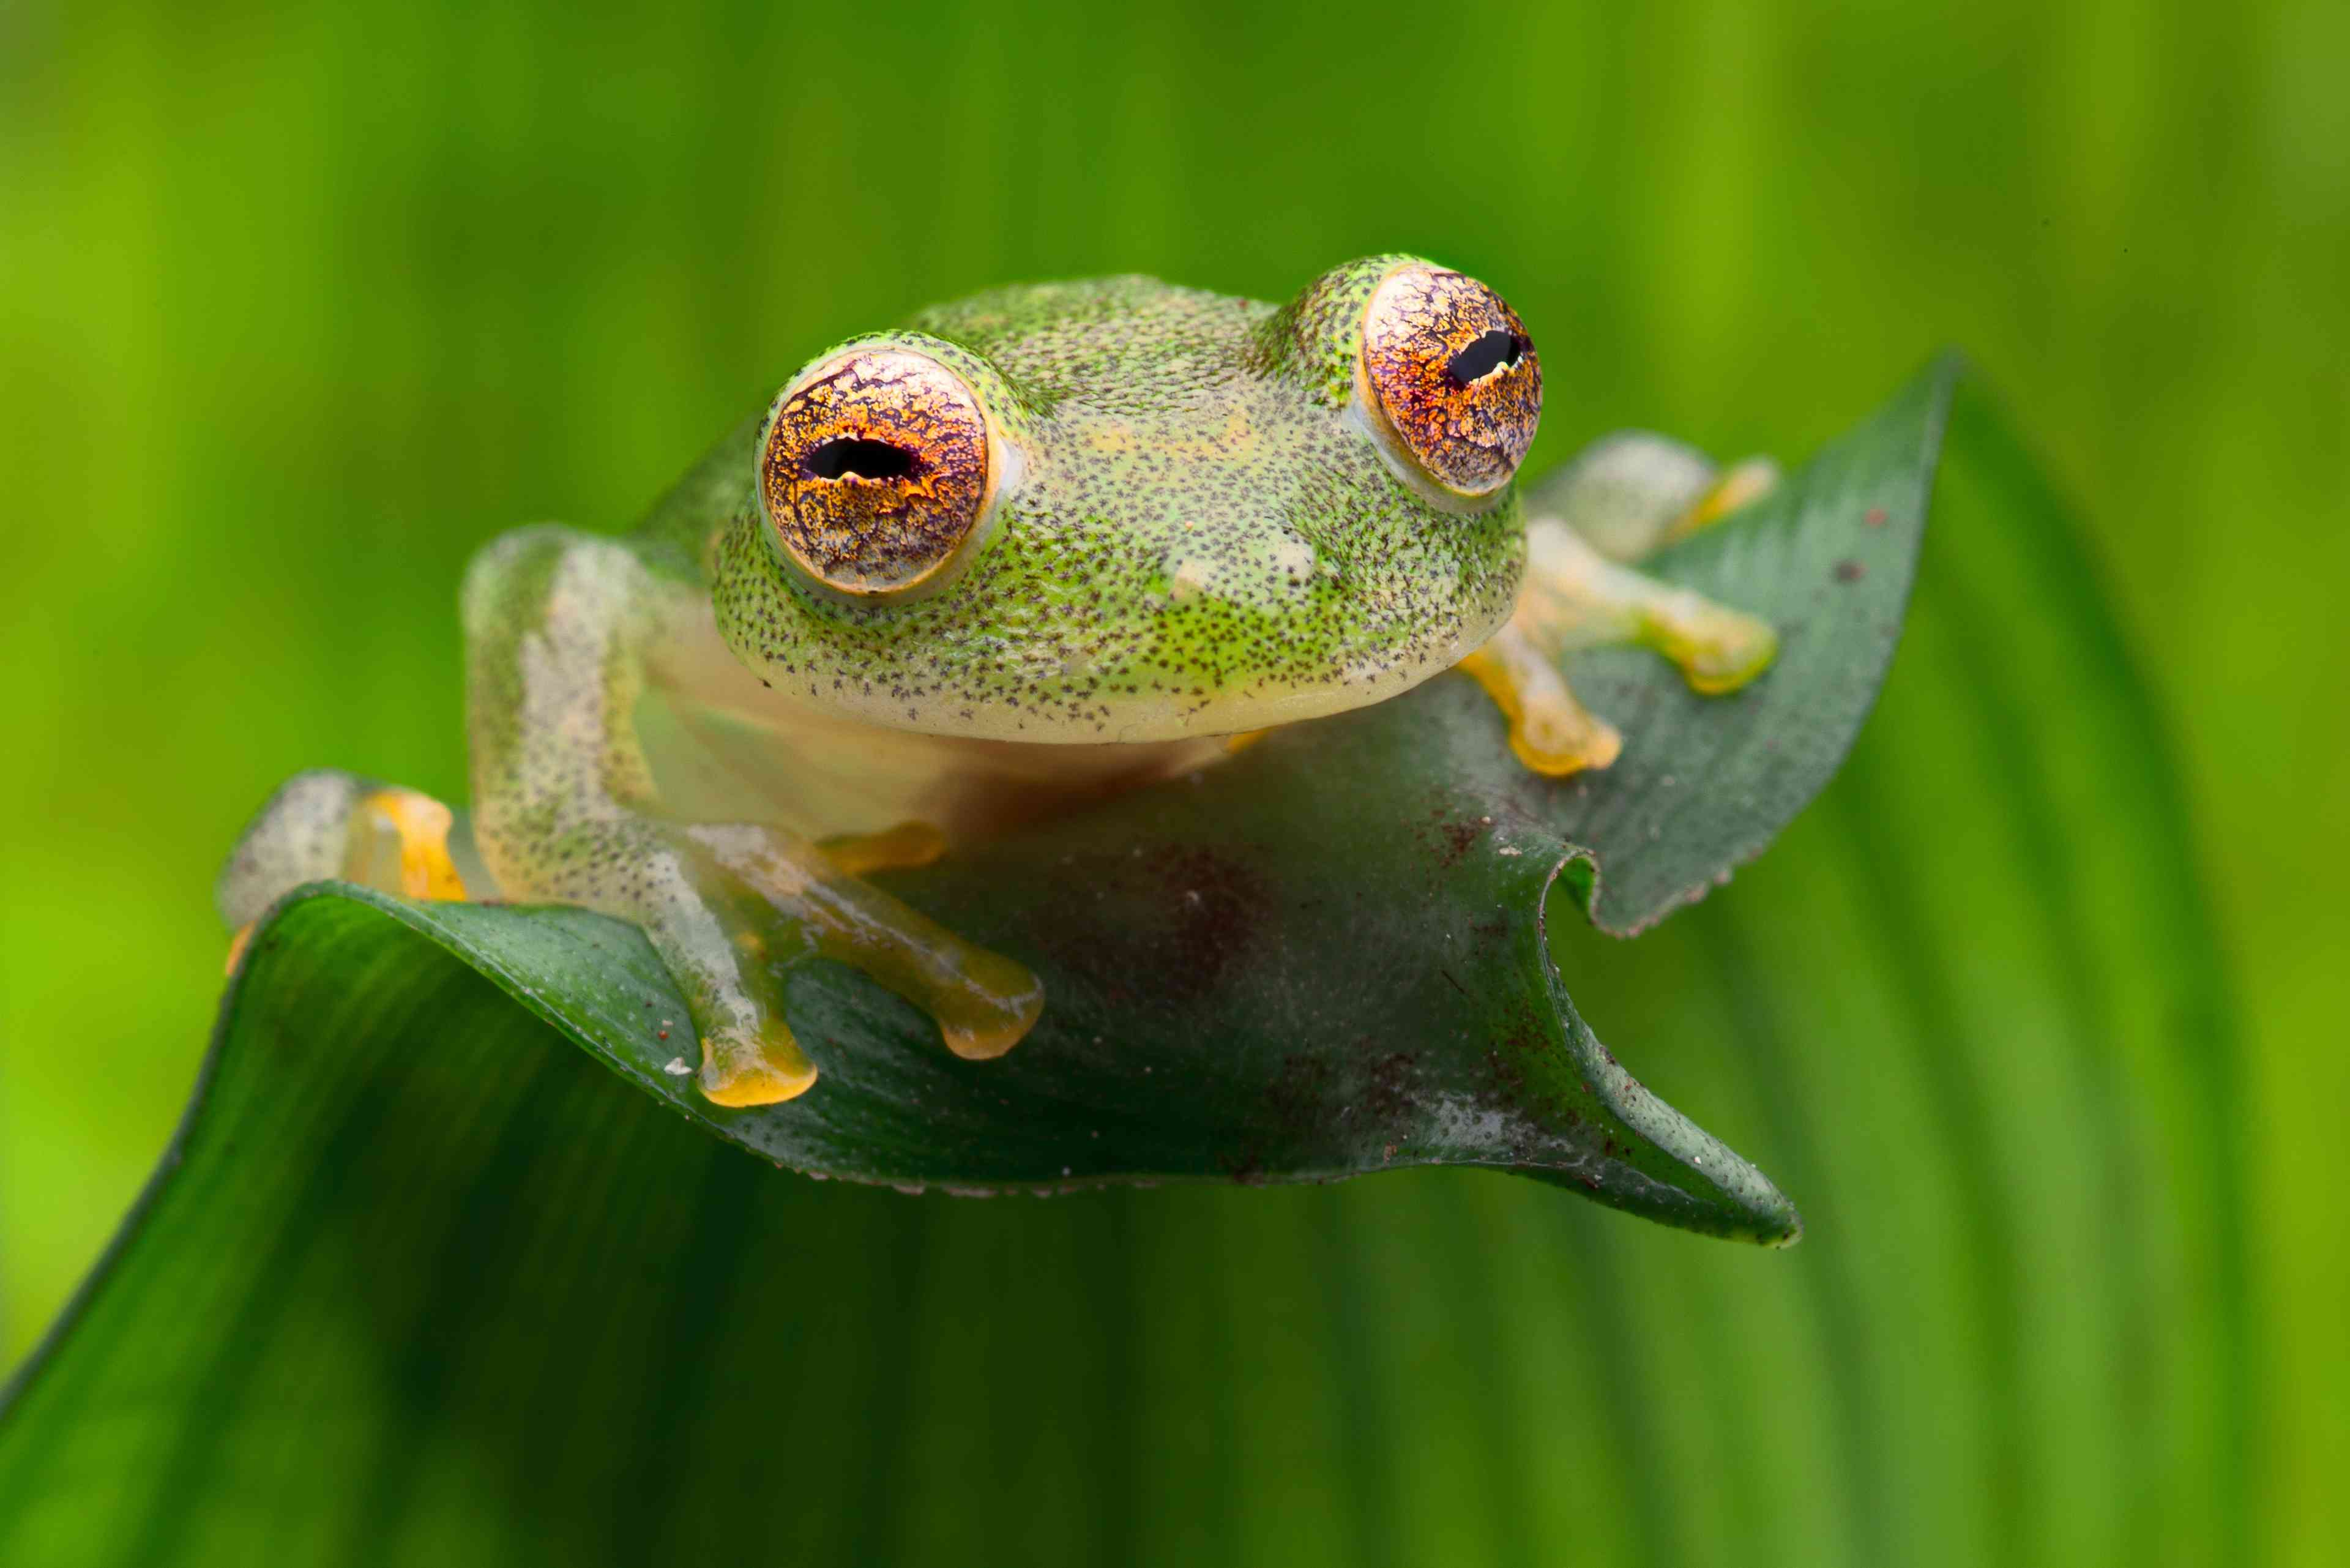 A green tropical glass frog with orange eyes and yellow feet siting on a green leaf